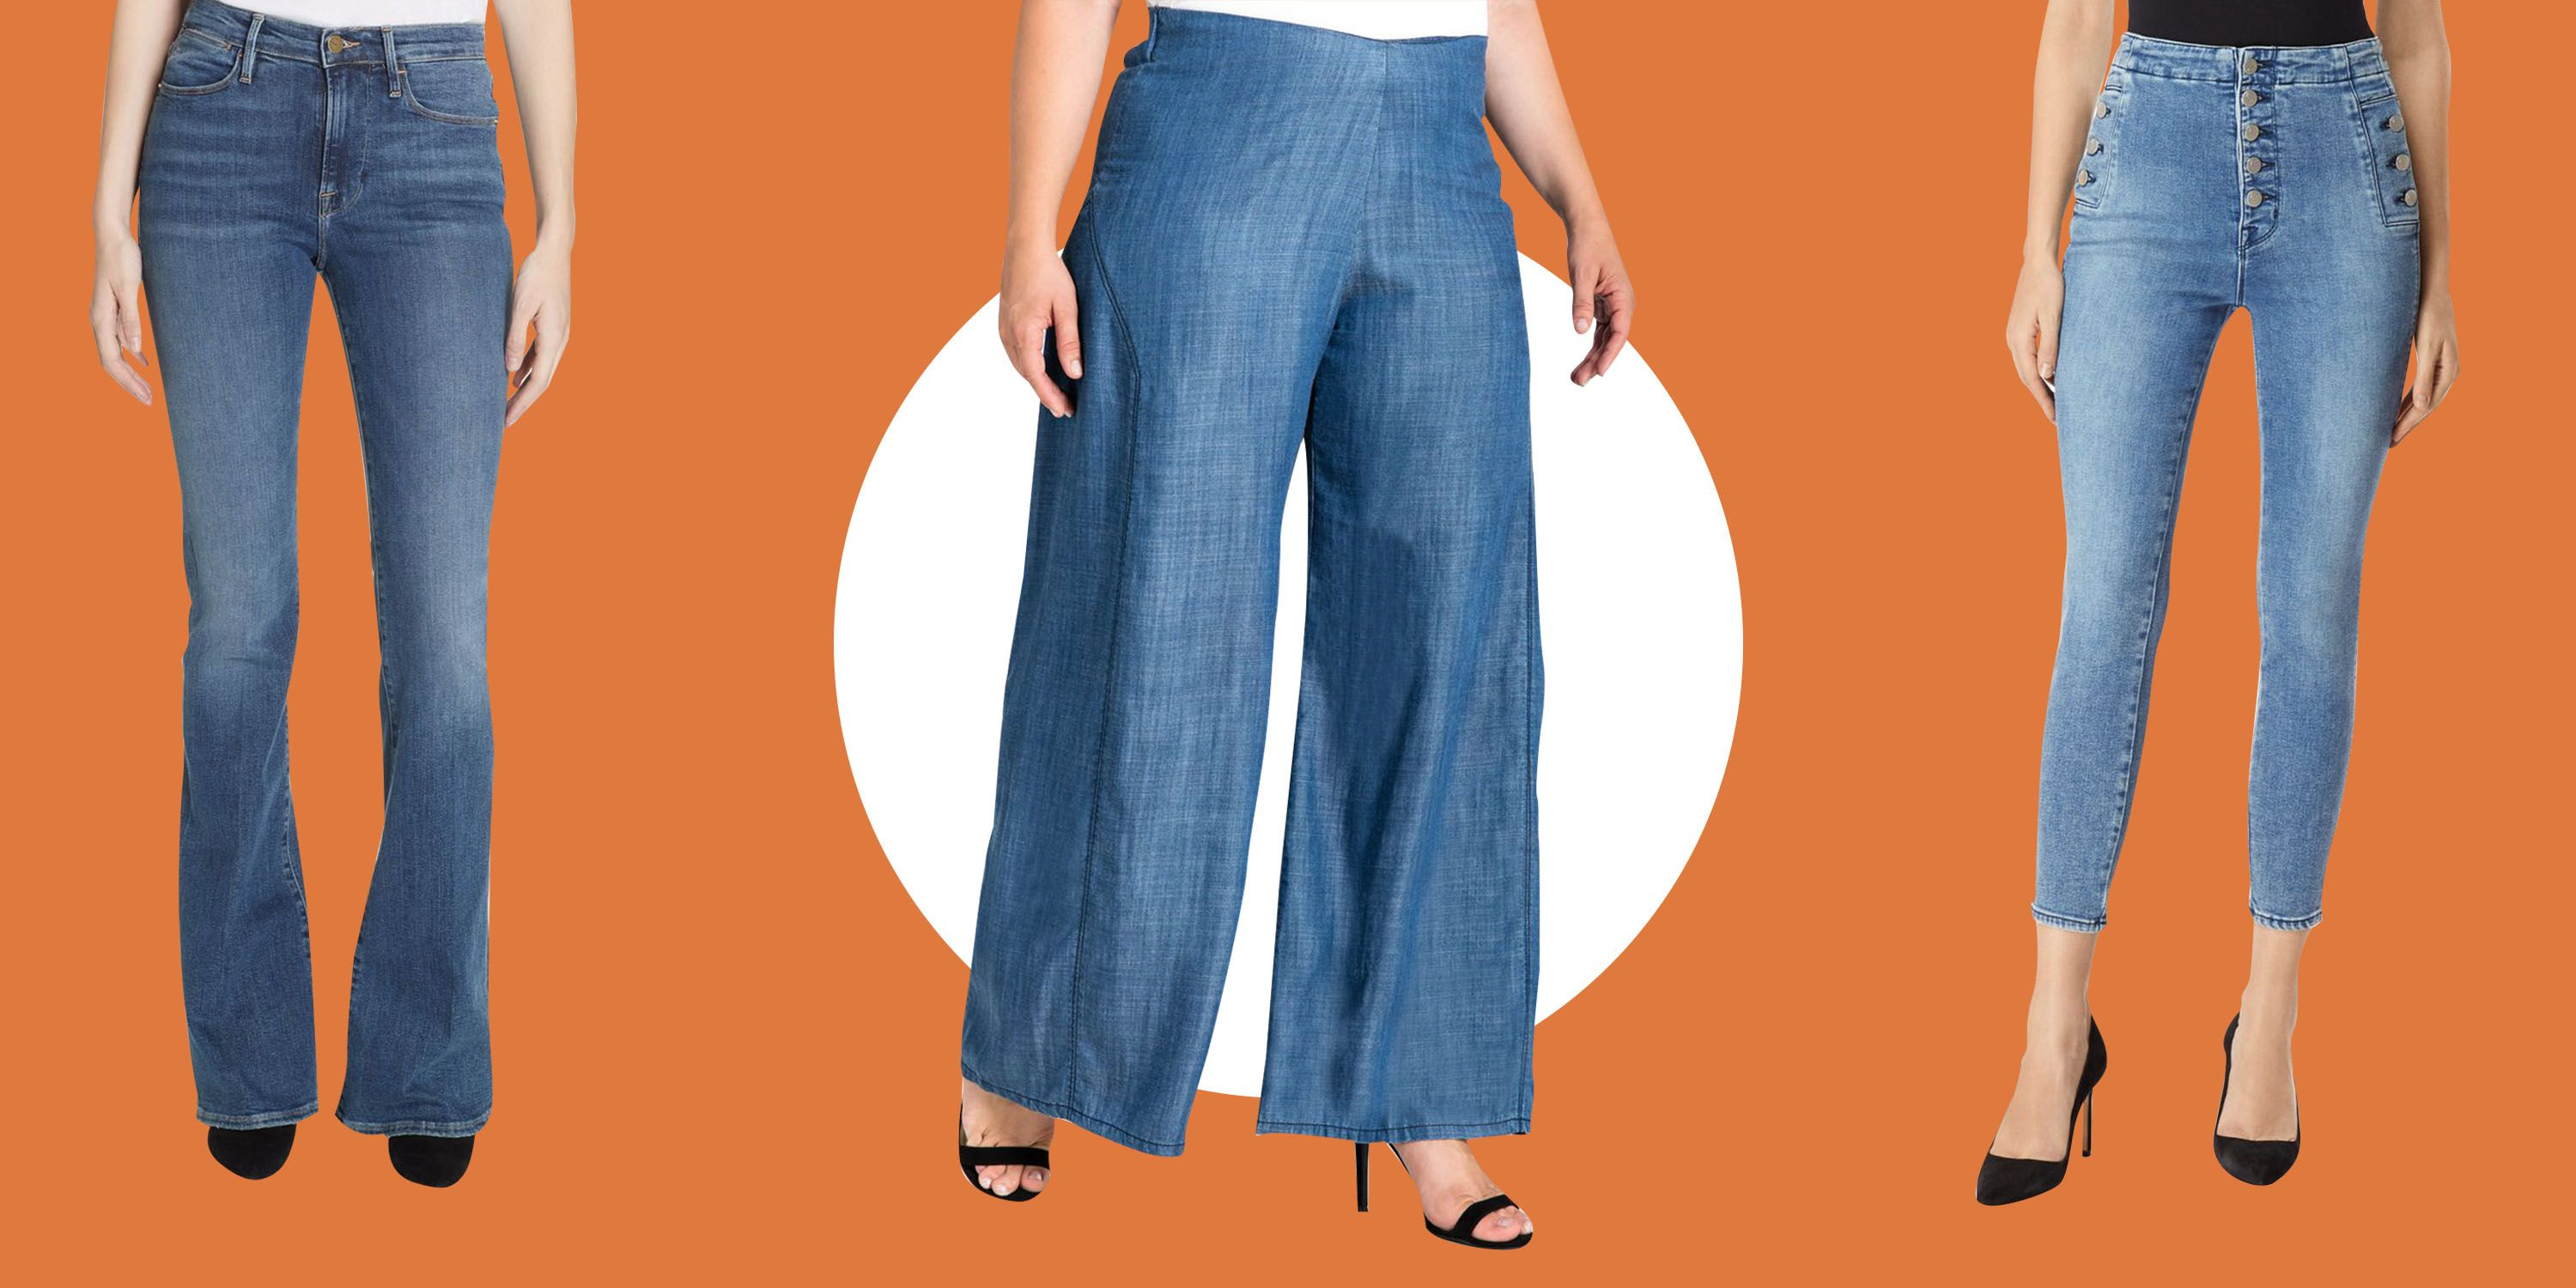 52d7791a33b The Most Flattering High-Waisted Jeans for Every Body Type